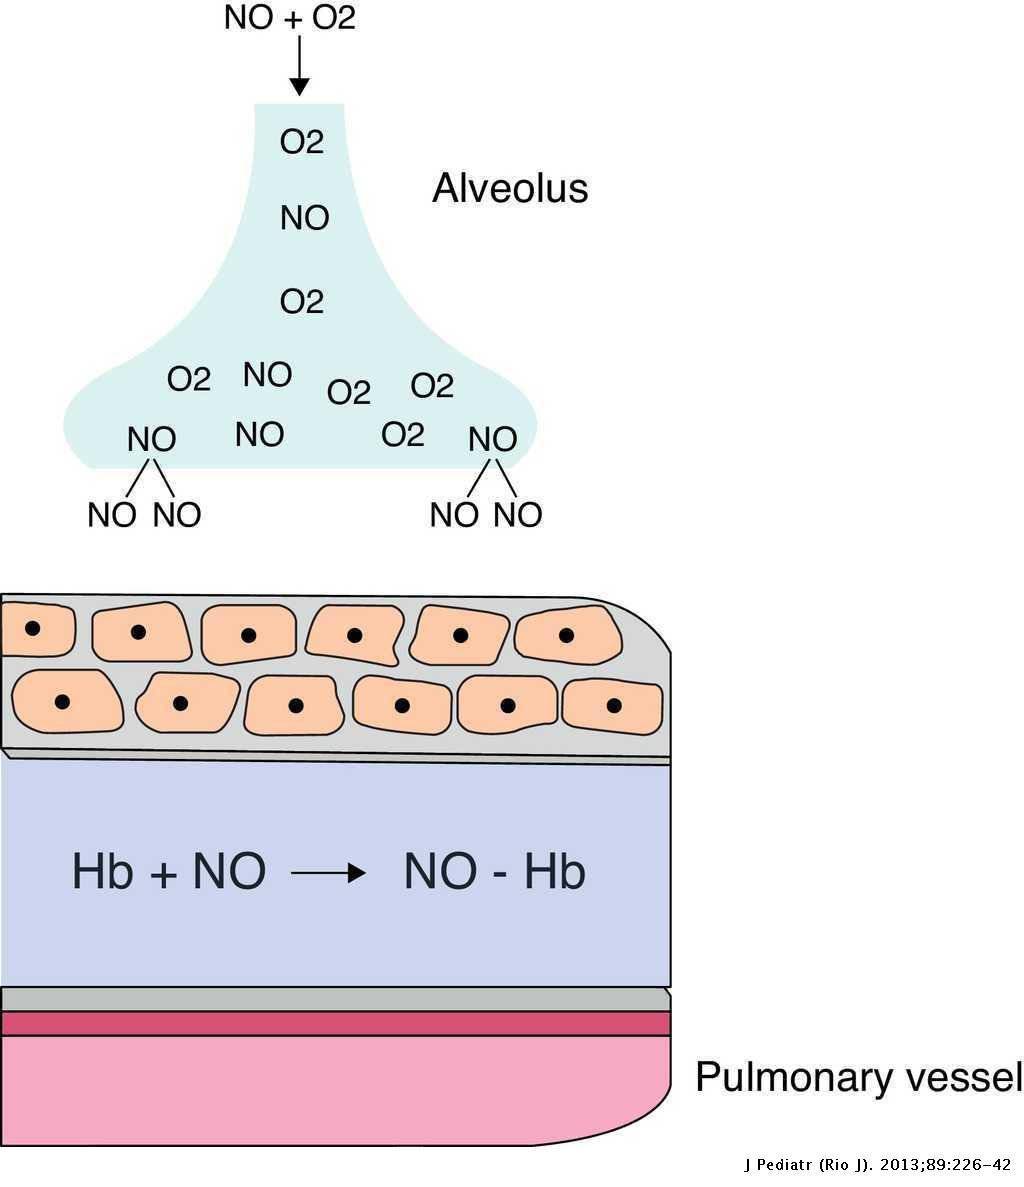 Persistent pulmonary hypertension of the newborn: recent